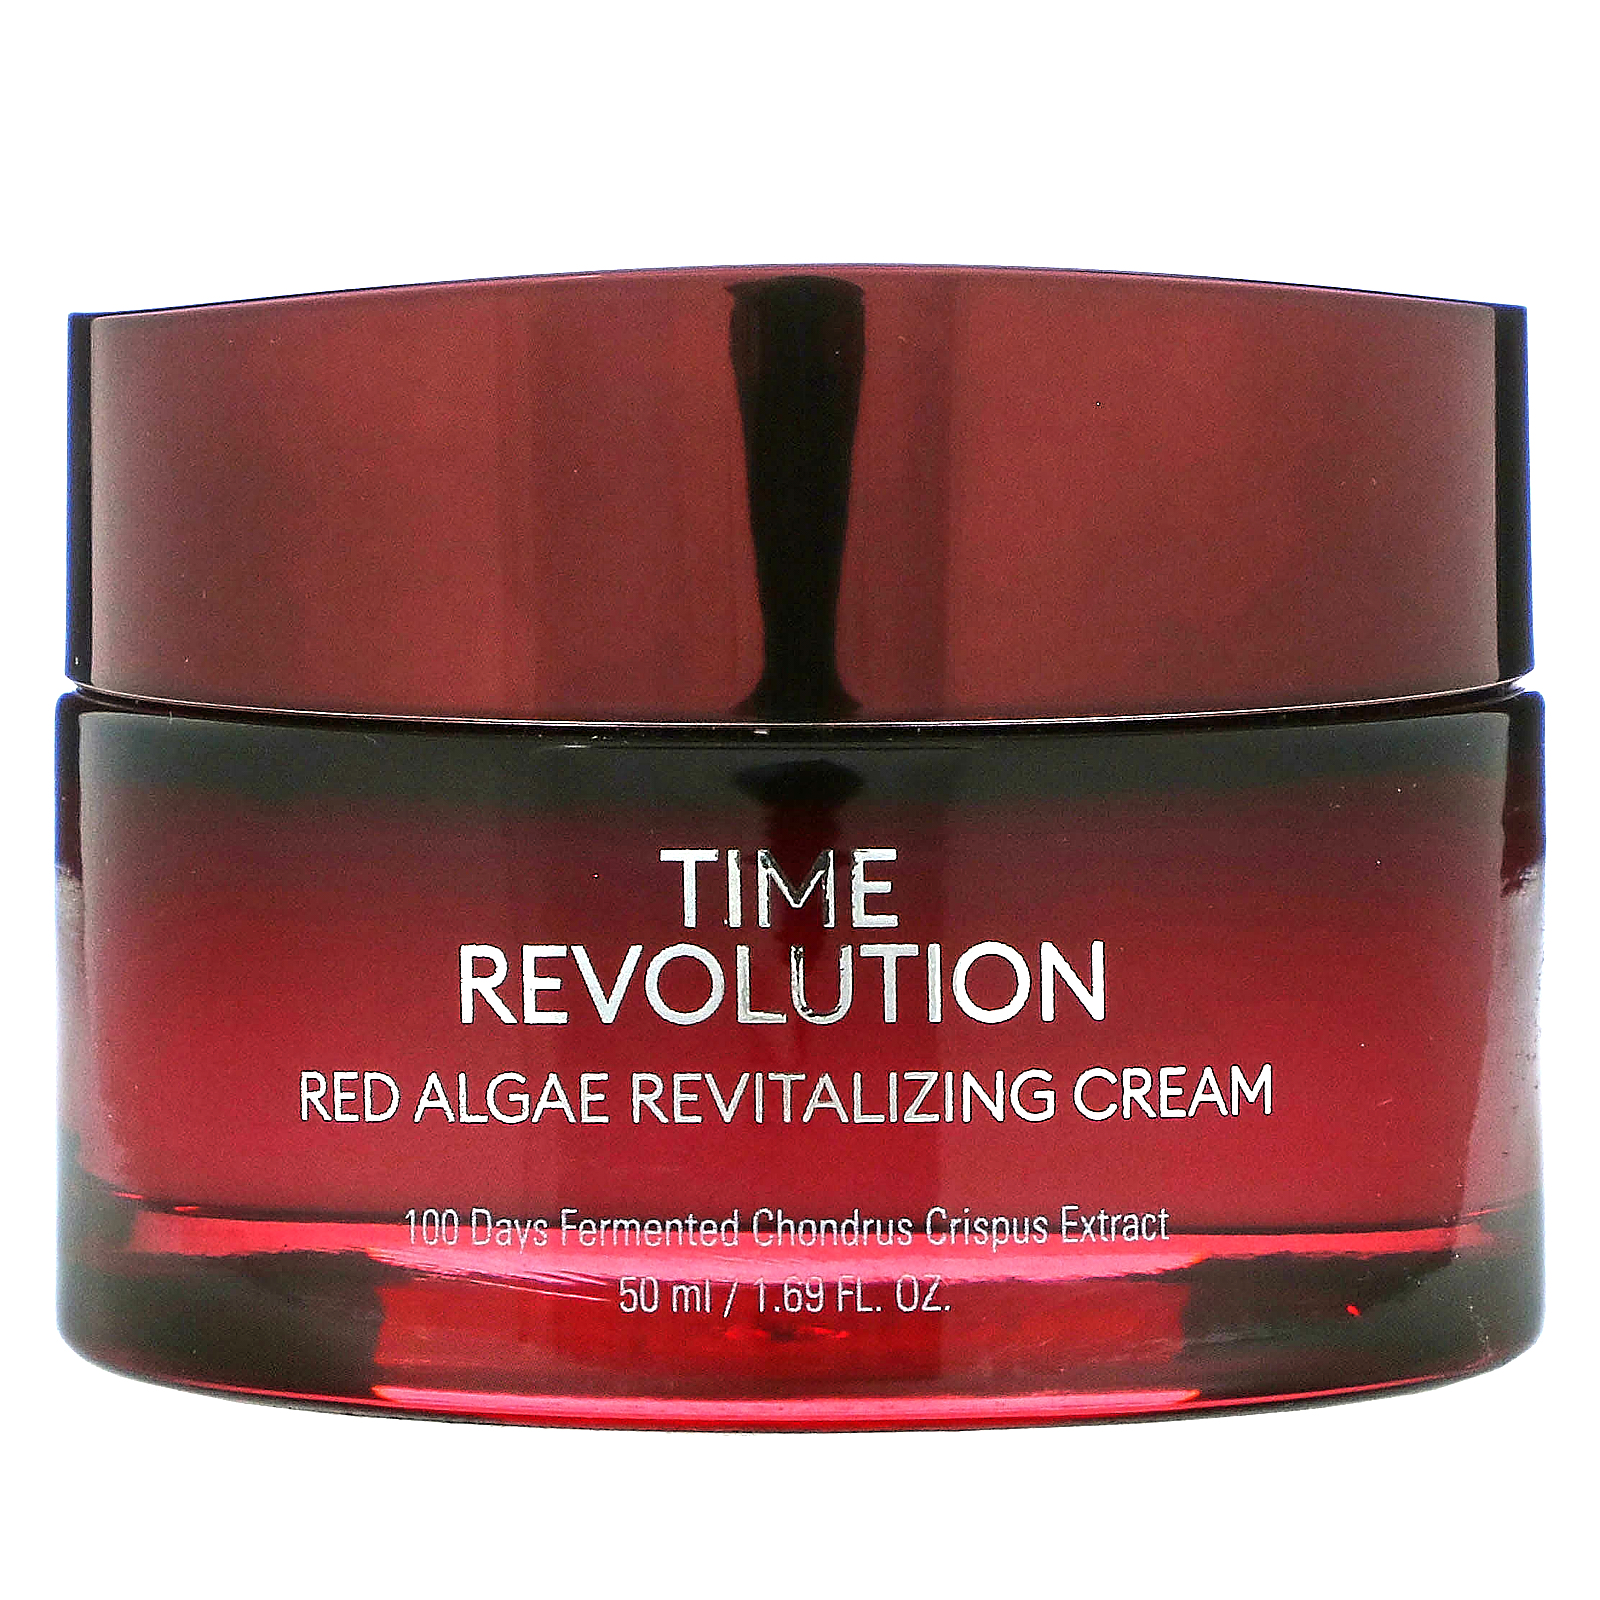 Missha, Time Revolution, Red Algae Revitalizing Cream, 1.69 fl oz (50 ml)